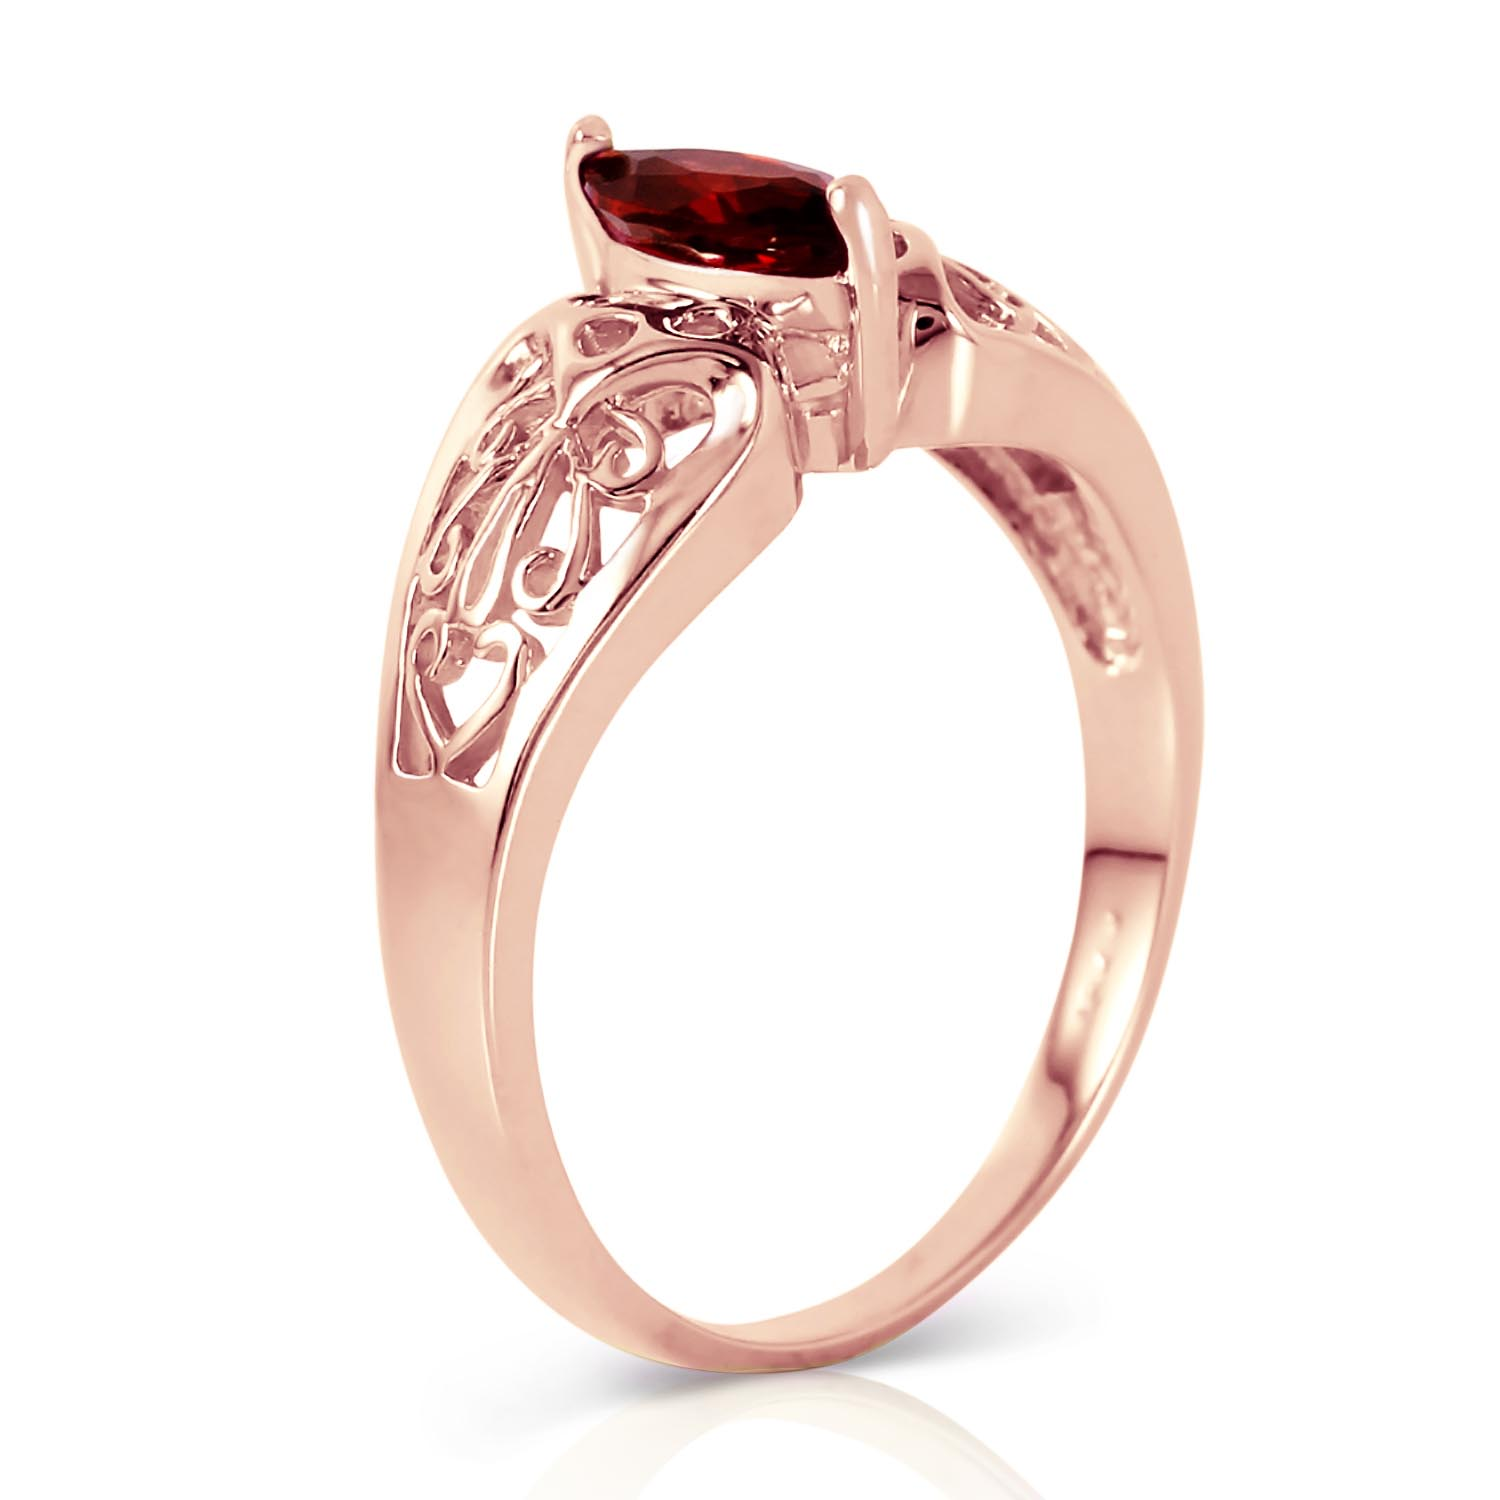 Marquise Cut Garnet Filigree Ring 0.2ct in 14K Rose Gold